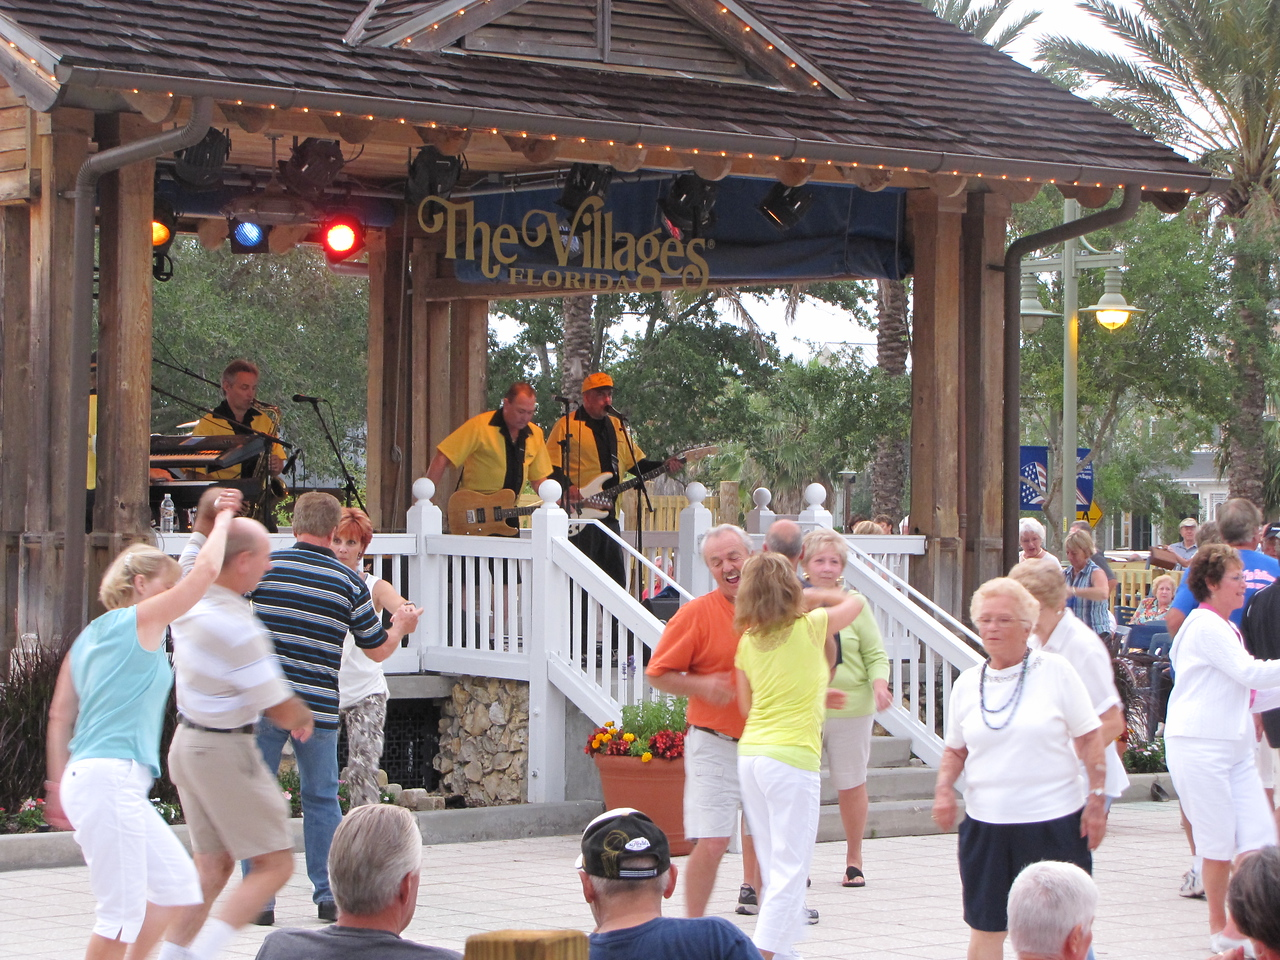 Rocky & The Rollers a popular 50's & 60's band perform at Sumter Landing in The Villages.